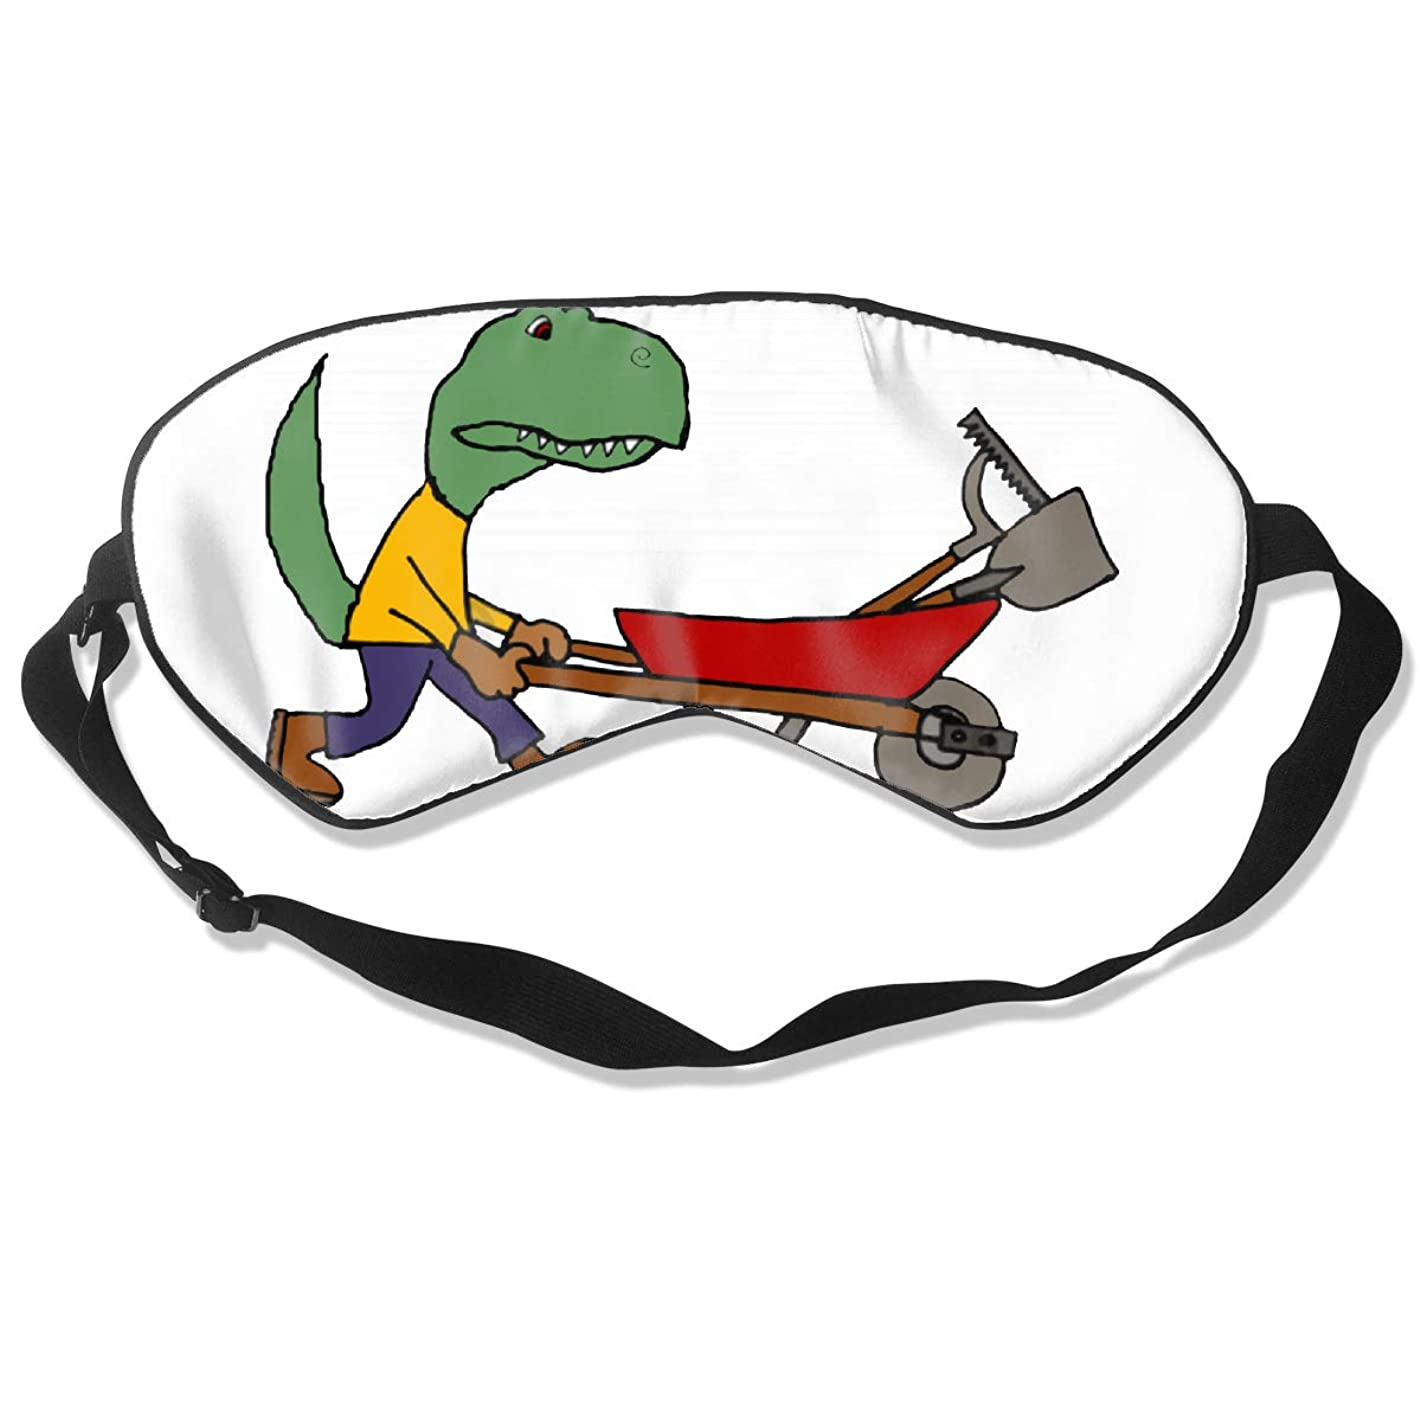 Funny T-rex Dinosaur Pushing Wheelbarrow Natural Silk Sleep Mask, Best Sleeping Mask Eye Mask Eye Cover for Travel, Nap, Meditation, Blindfold with Adjustable Strap for Men, Women